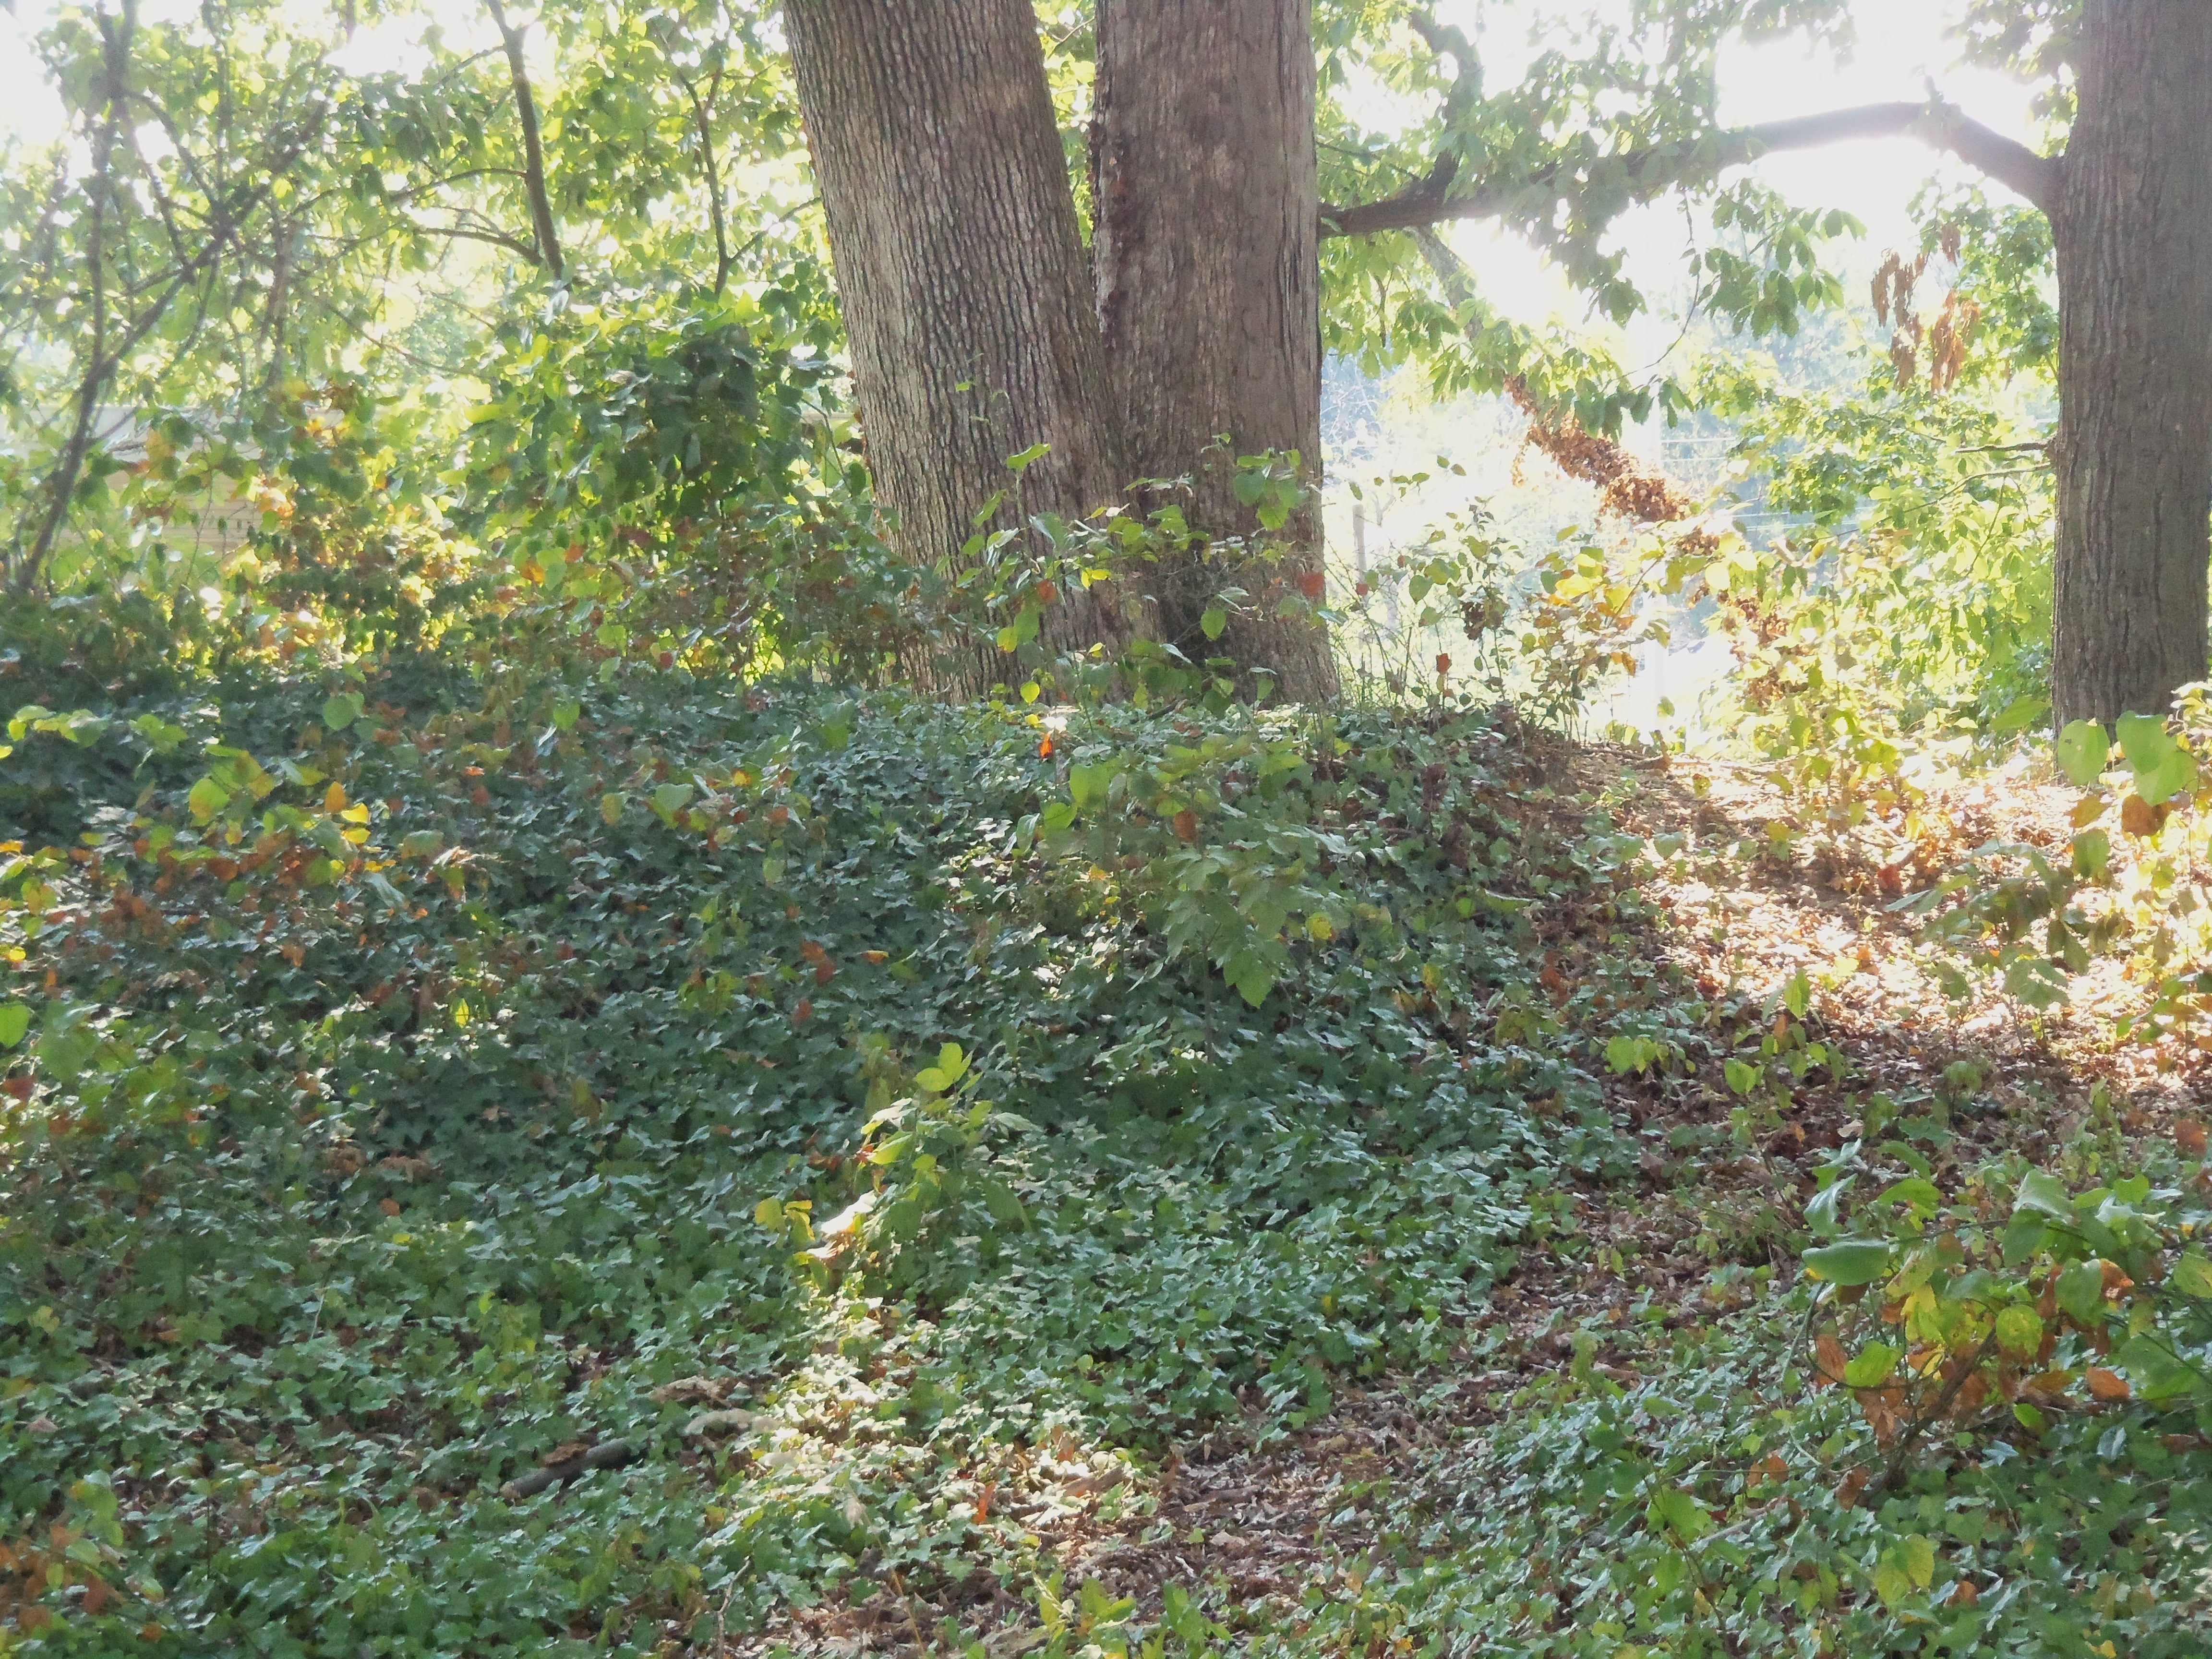 An overgrown portion of the remains of Fort Ethan Allen ((By Farragutful (Own work) [CC BY-SA 3.0 (http://creativecommons.org/licenses/by-sa/3.0)], via Wikimedia Commons))